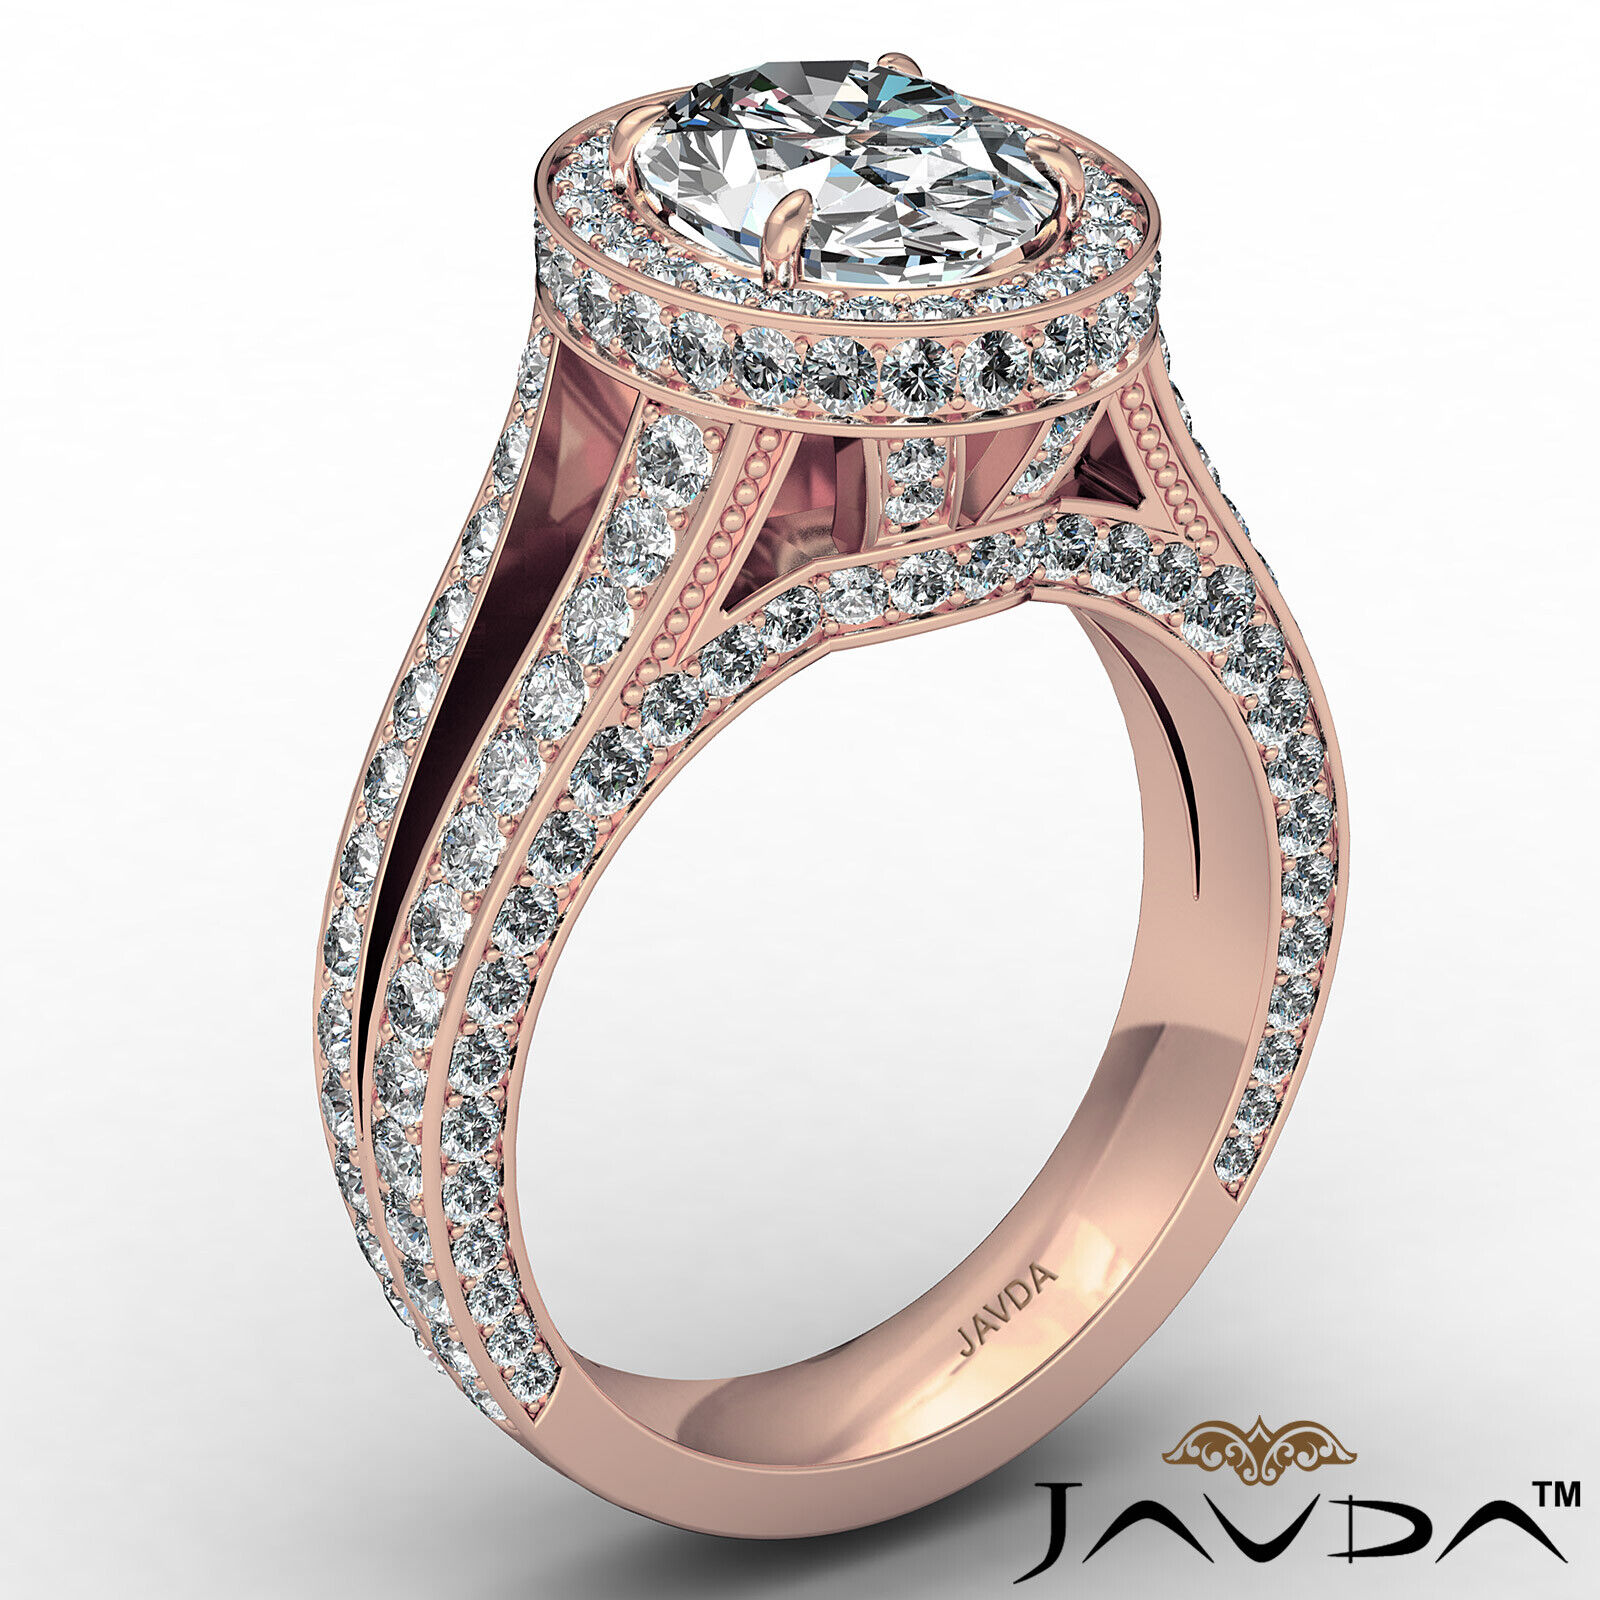 Halo Oval Diamond Engagement Ring GIA Certified F Color & SI1 clarity 2.31 ctw 5